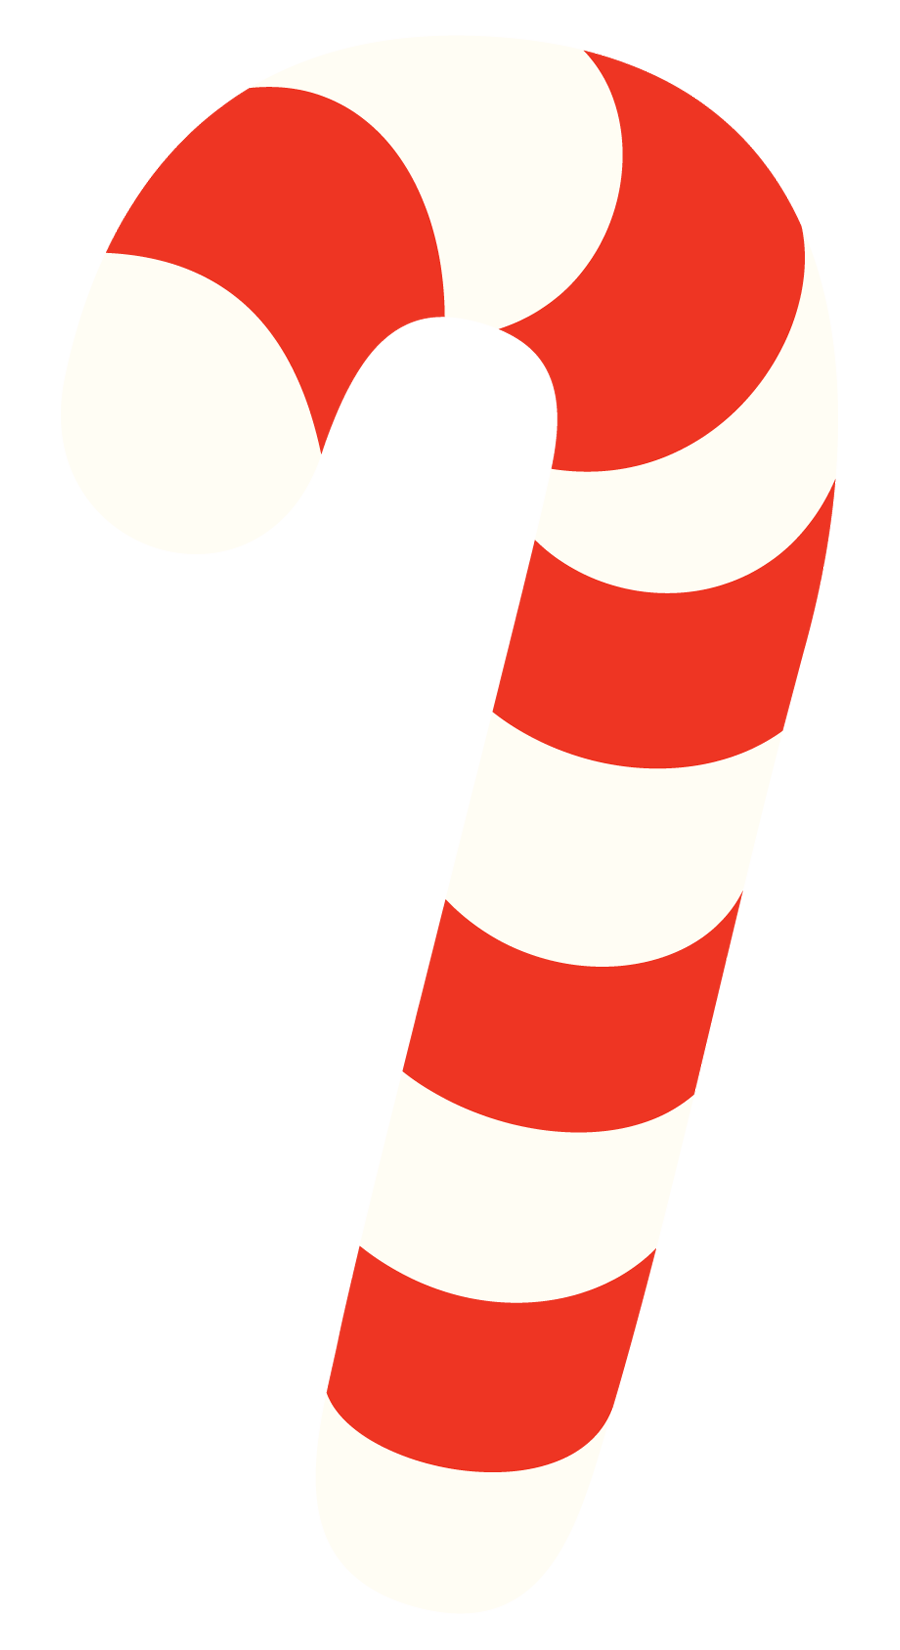 Straight candy cane clipart graphic black and white Images Of Candy Cane   Free download best Images Of Candy ... graphic black and white